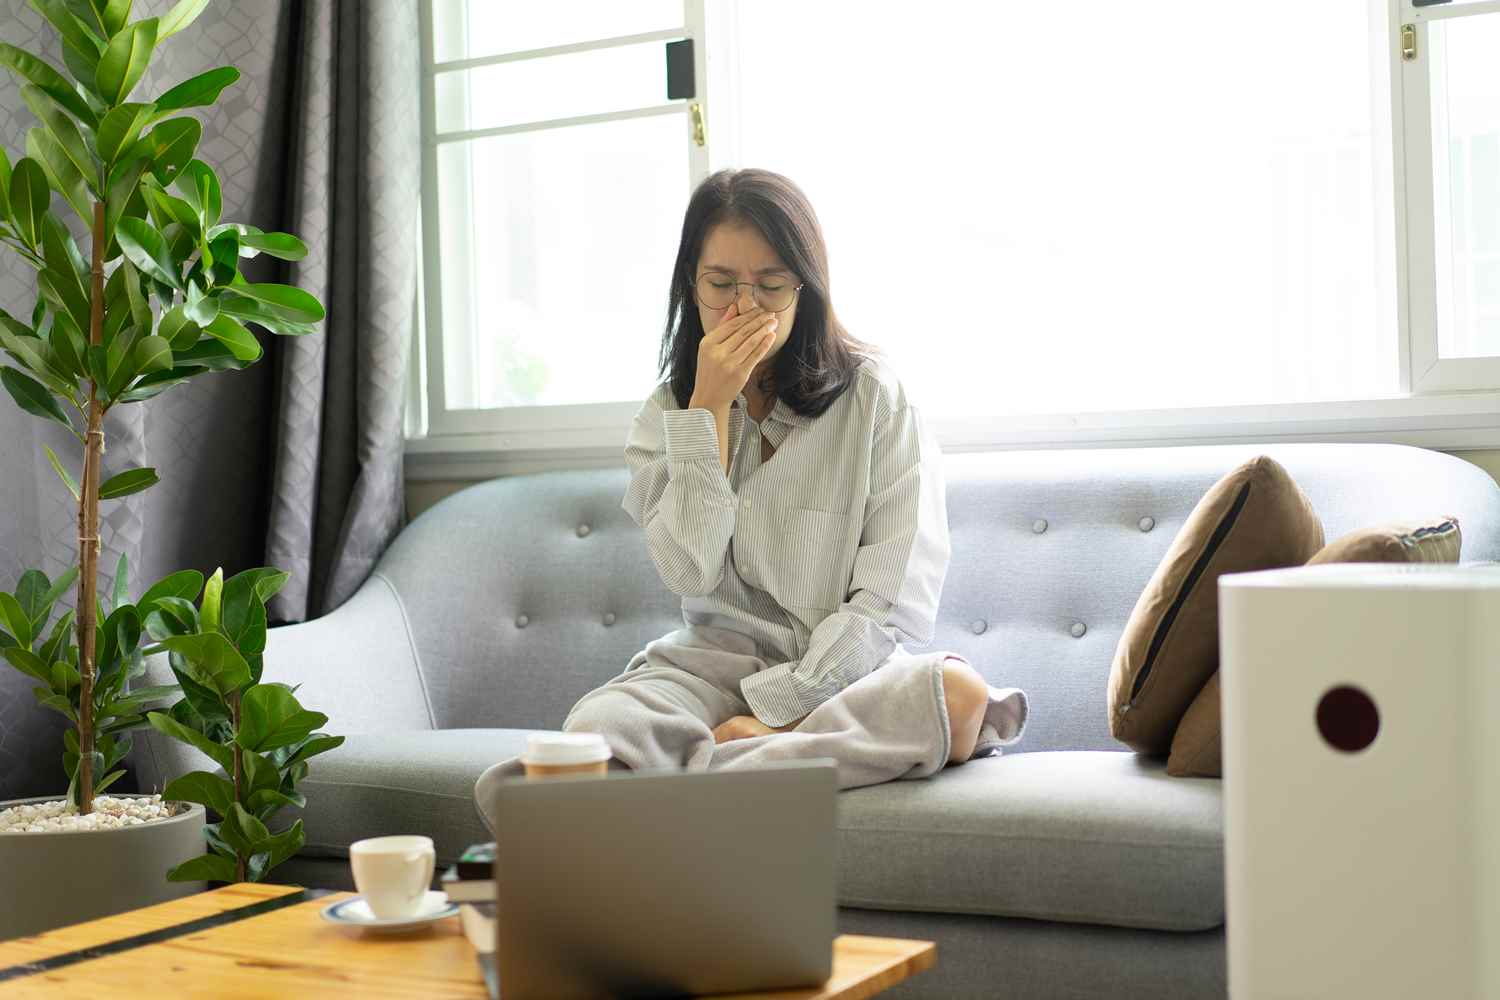 How Do Humidifiers Help with A Dry & Sore Throat?